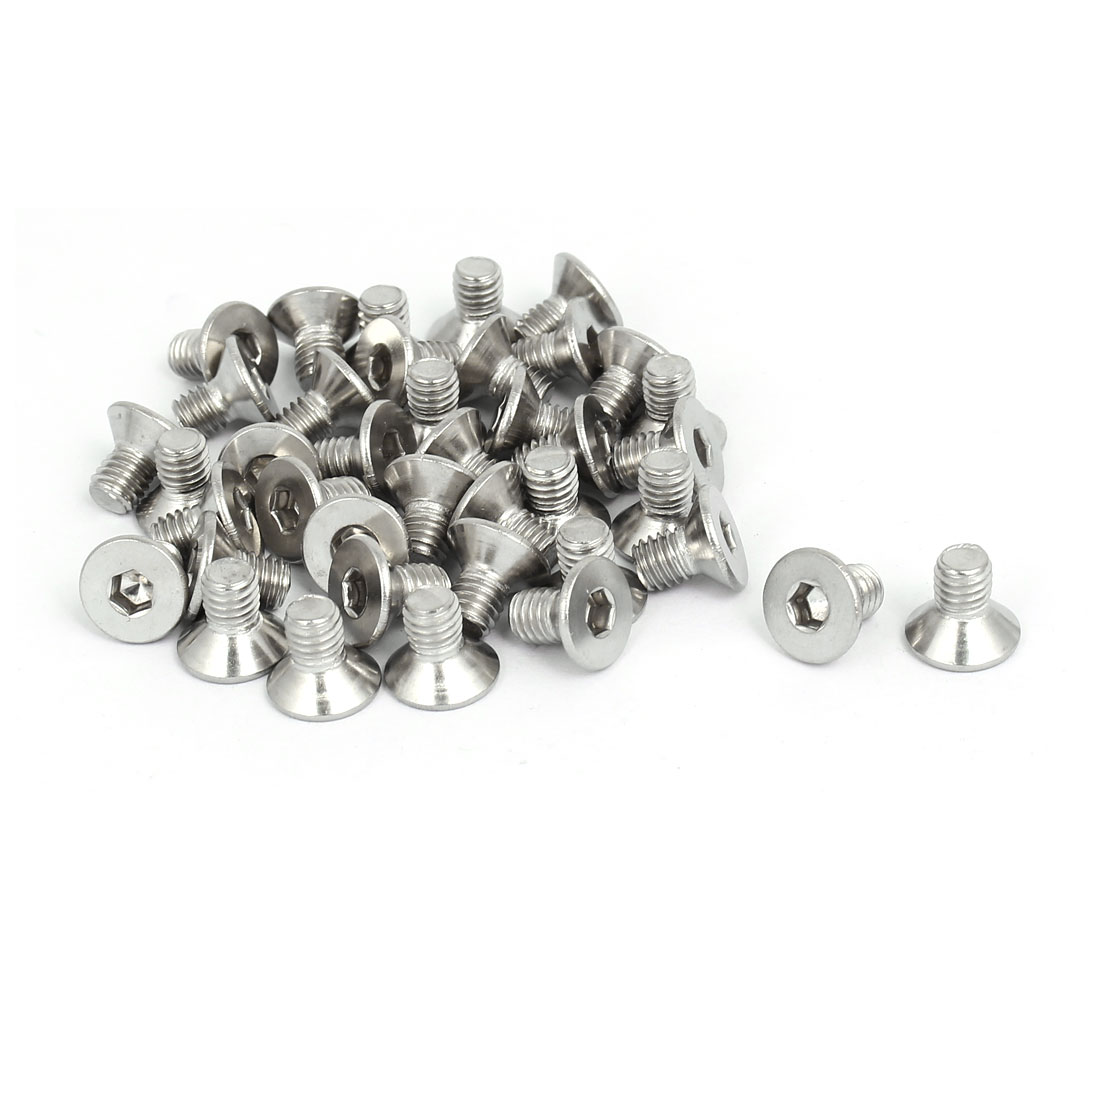 M6x10mm 304 Stainless Steel Flat Head Hex Socket Screws Fastener DIN7991 40pcs